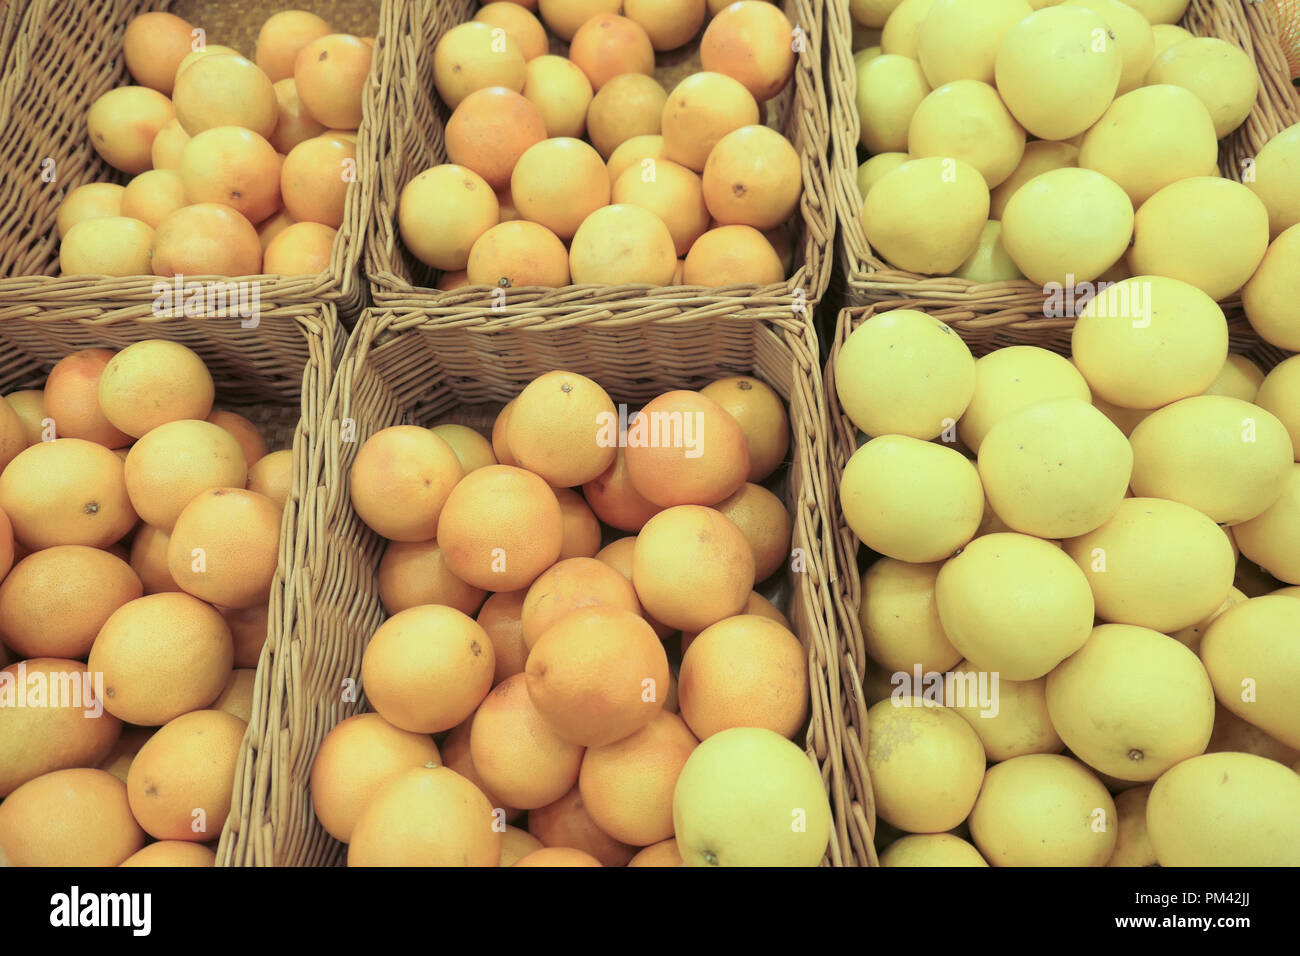 Ripe oranges and grapefruits at a market - Stock Image